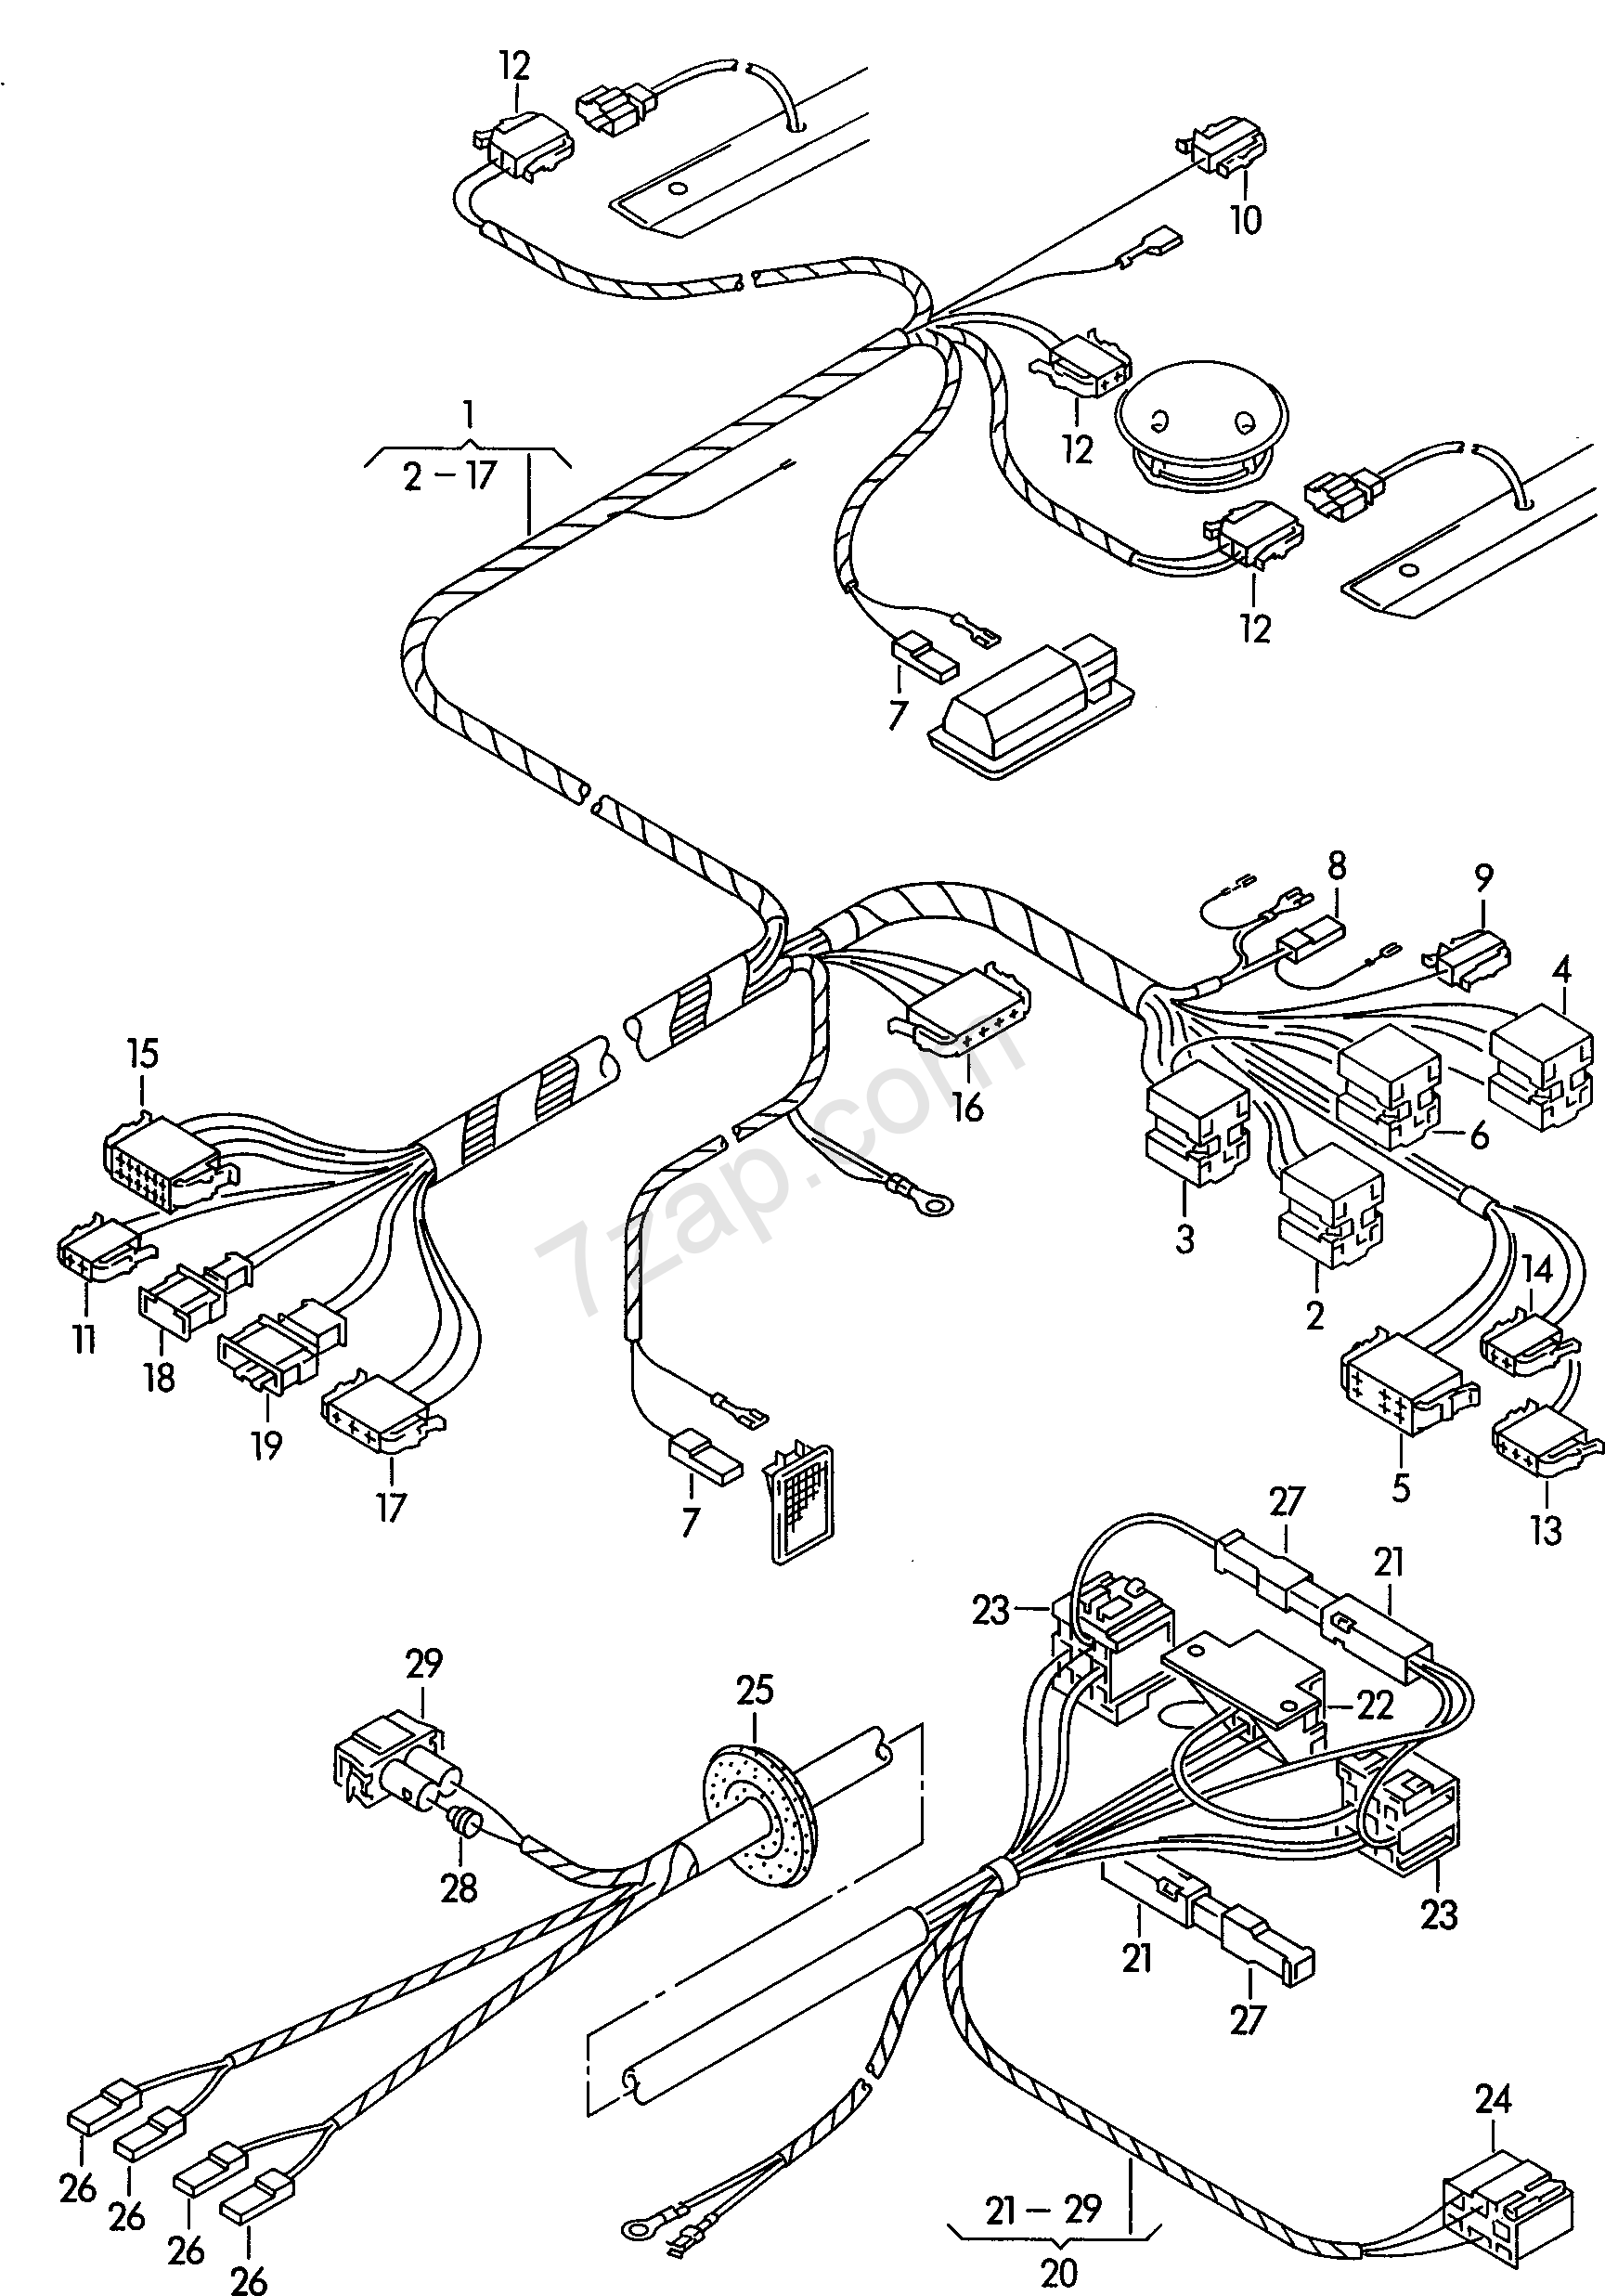 Wiring Harness For Stretcher Transporter Tr Year